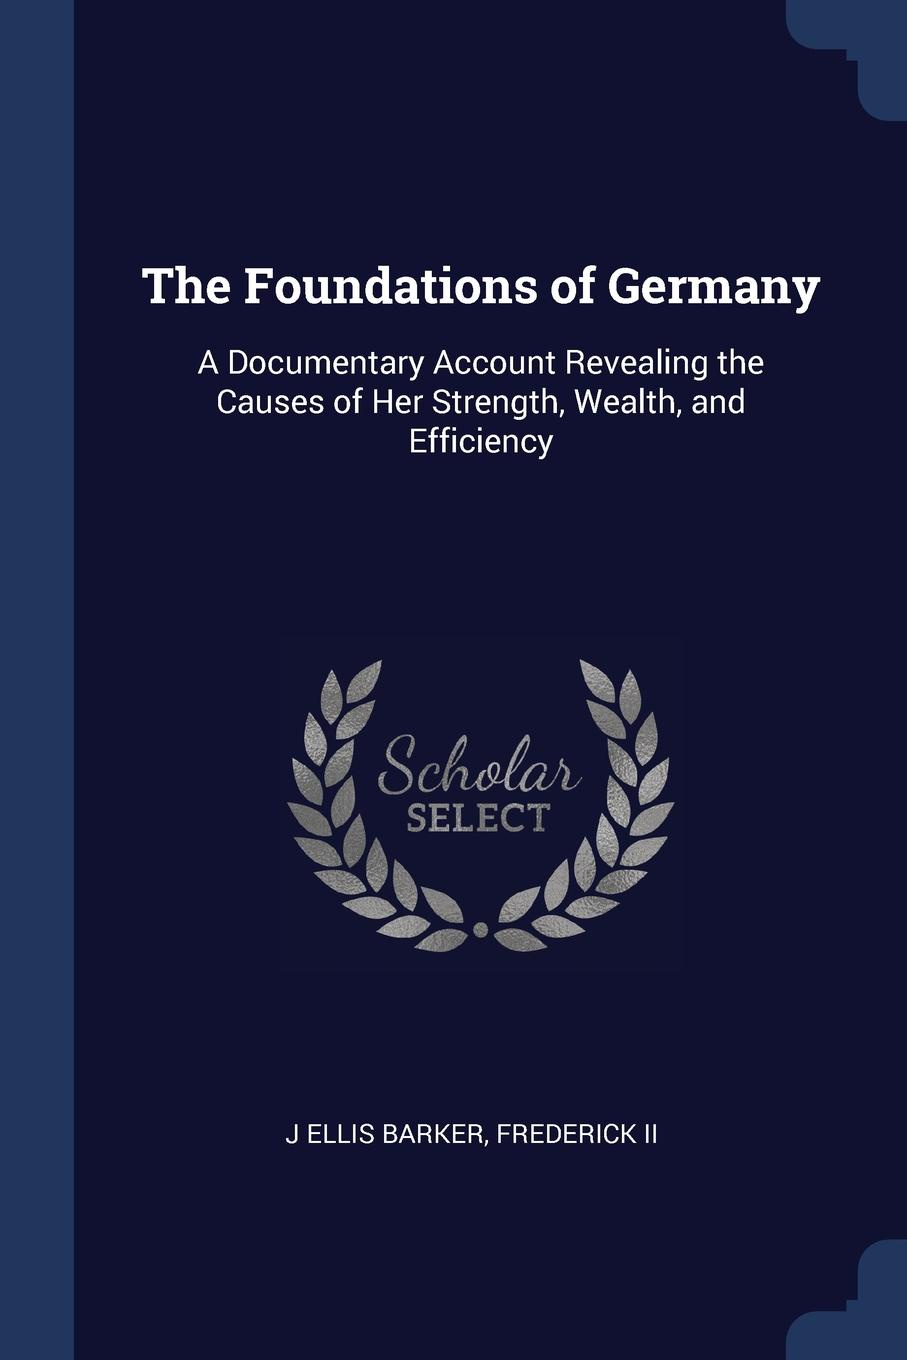 J Ellis Barker, Frederick II The Foundations of Germany. A Documentary Account Revealing the Causes of Her Strength, Wealth, and Efficiency j ellis barker the foundations of germany a documentary account revealing the causes of her strength wealth and efficiency